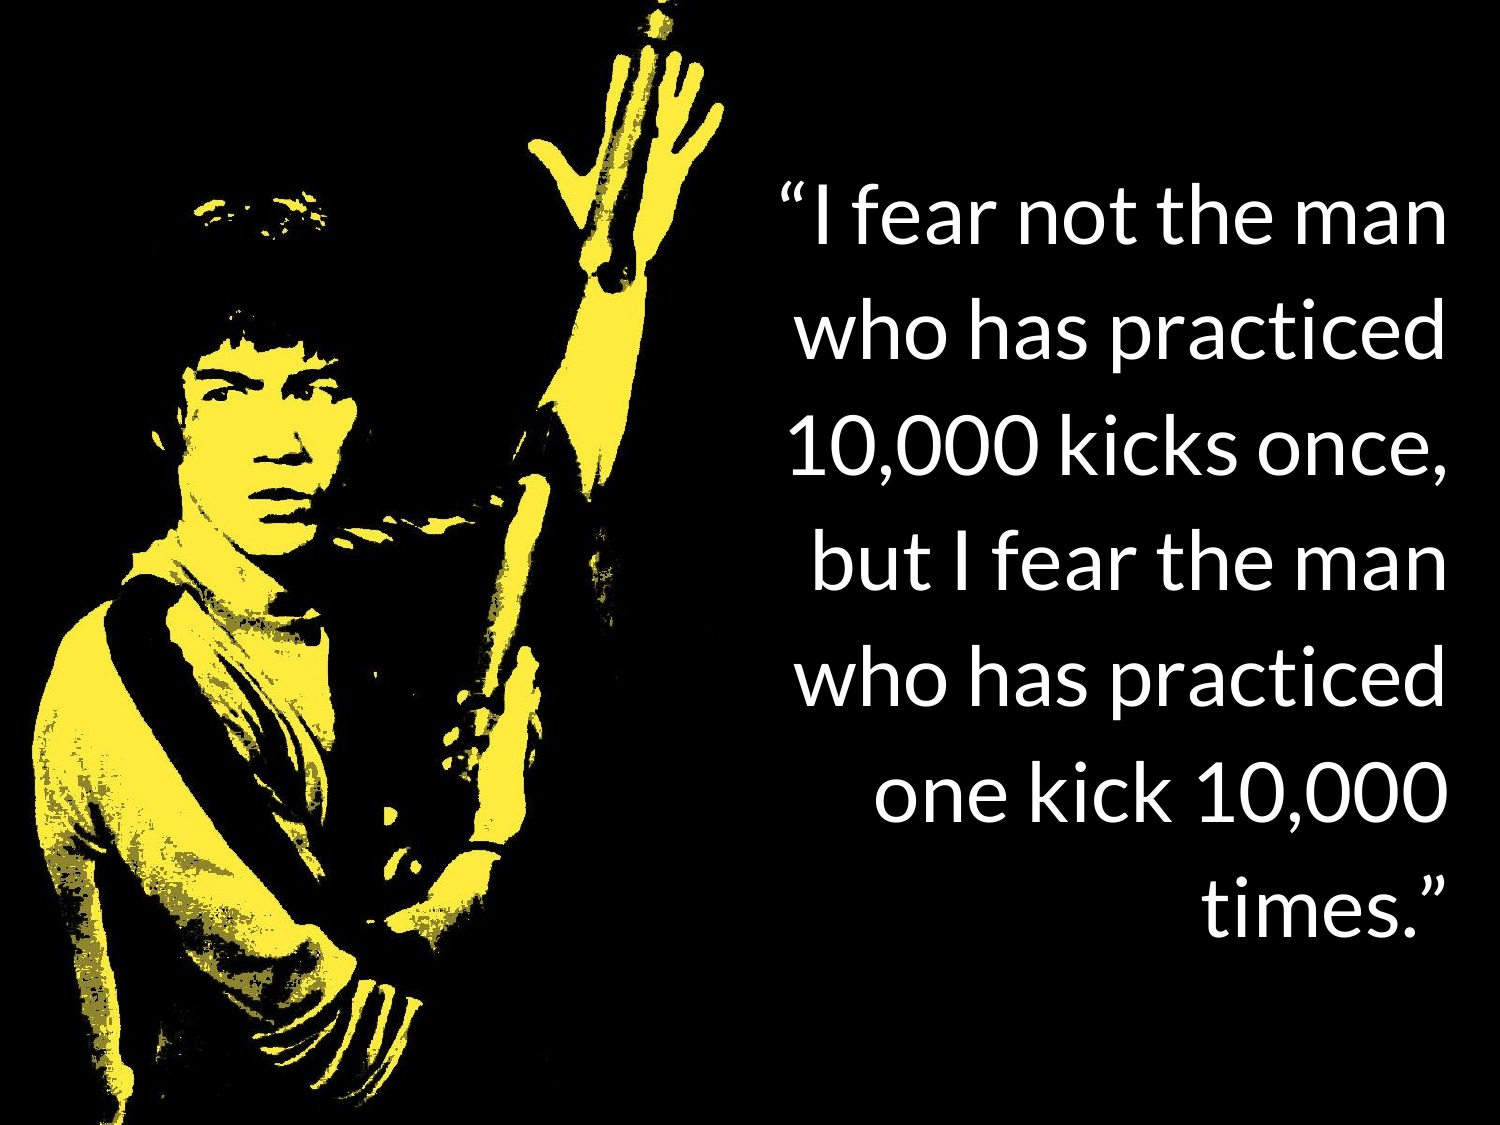 Top 10 kung fu quotes with image drmichaelchin storify 3 years ago voltagebd Image collections